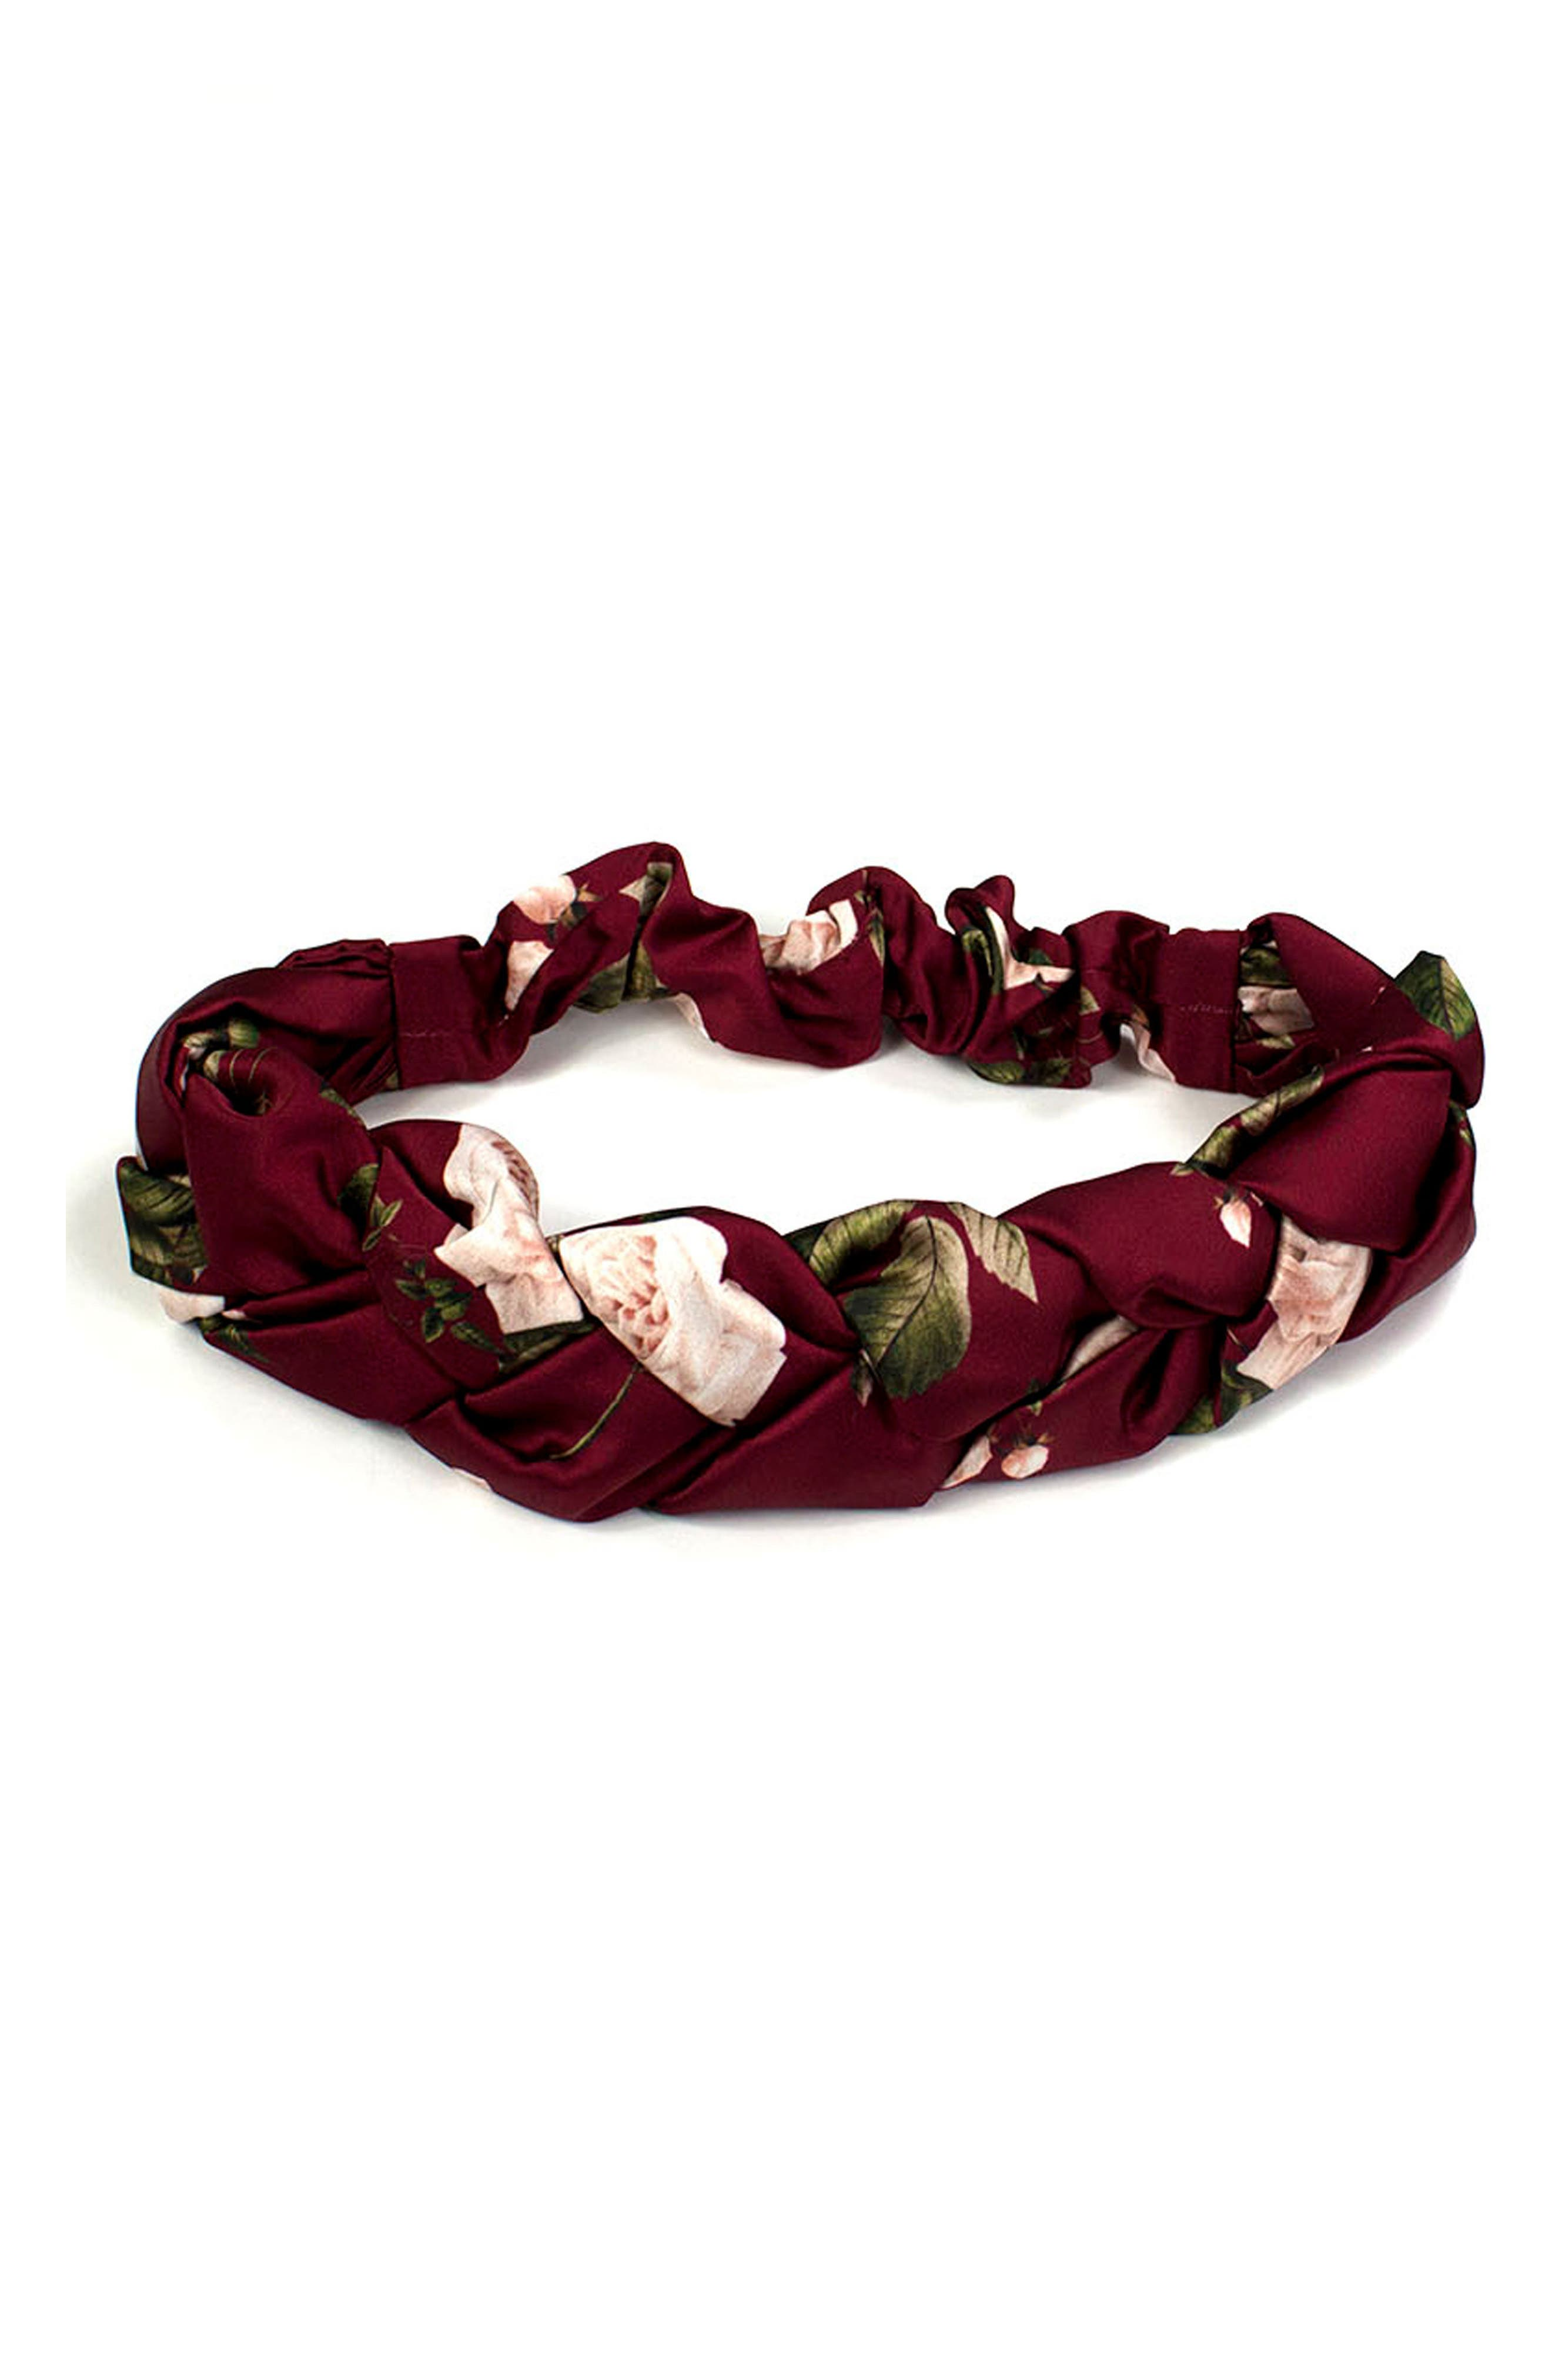 Winter Rose Braided Head Wrap,                             Alternate thumbnail 3, color,                             Winter Rose